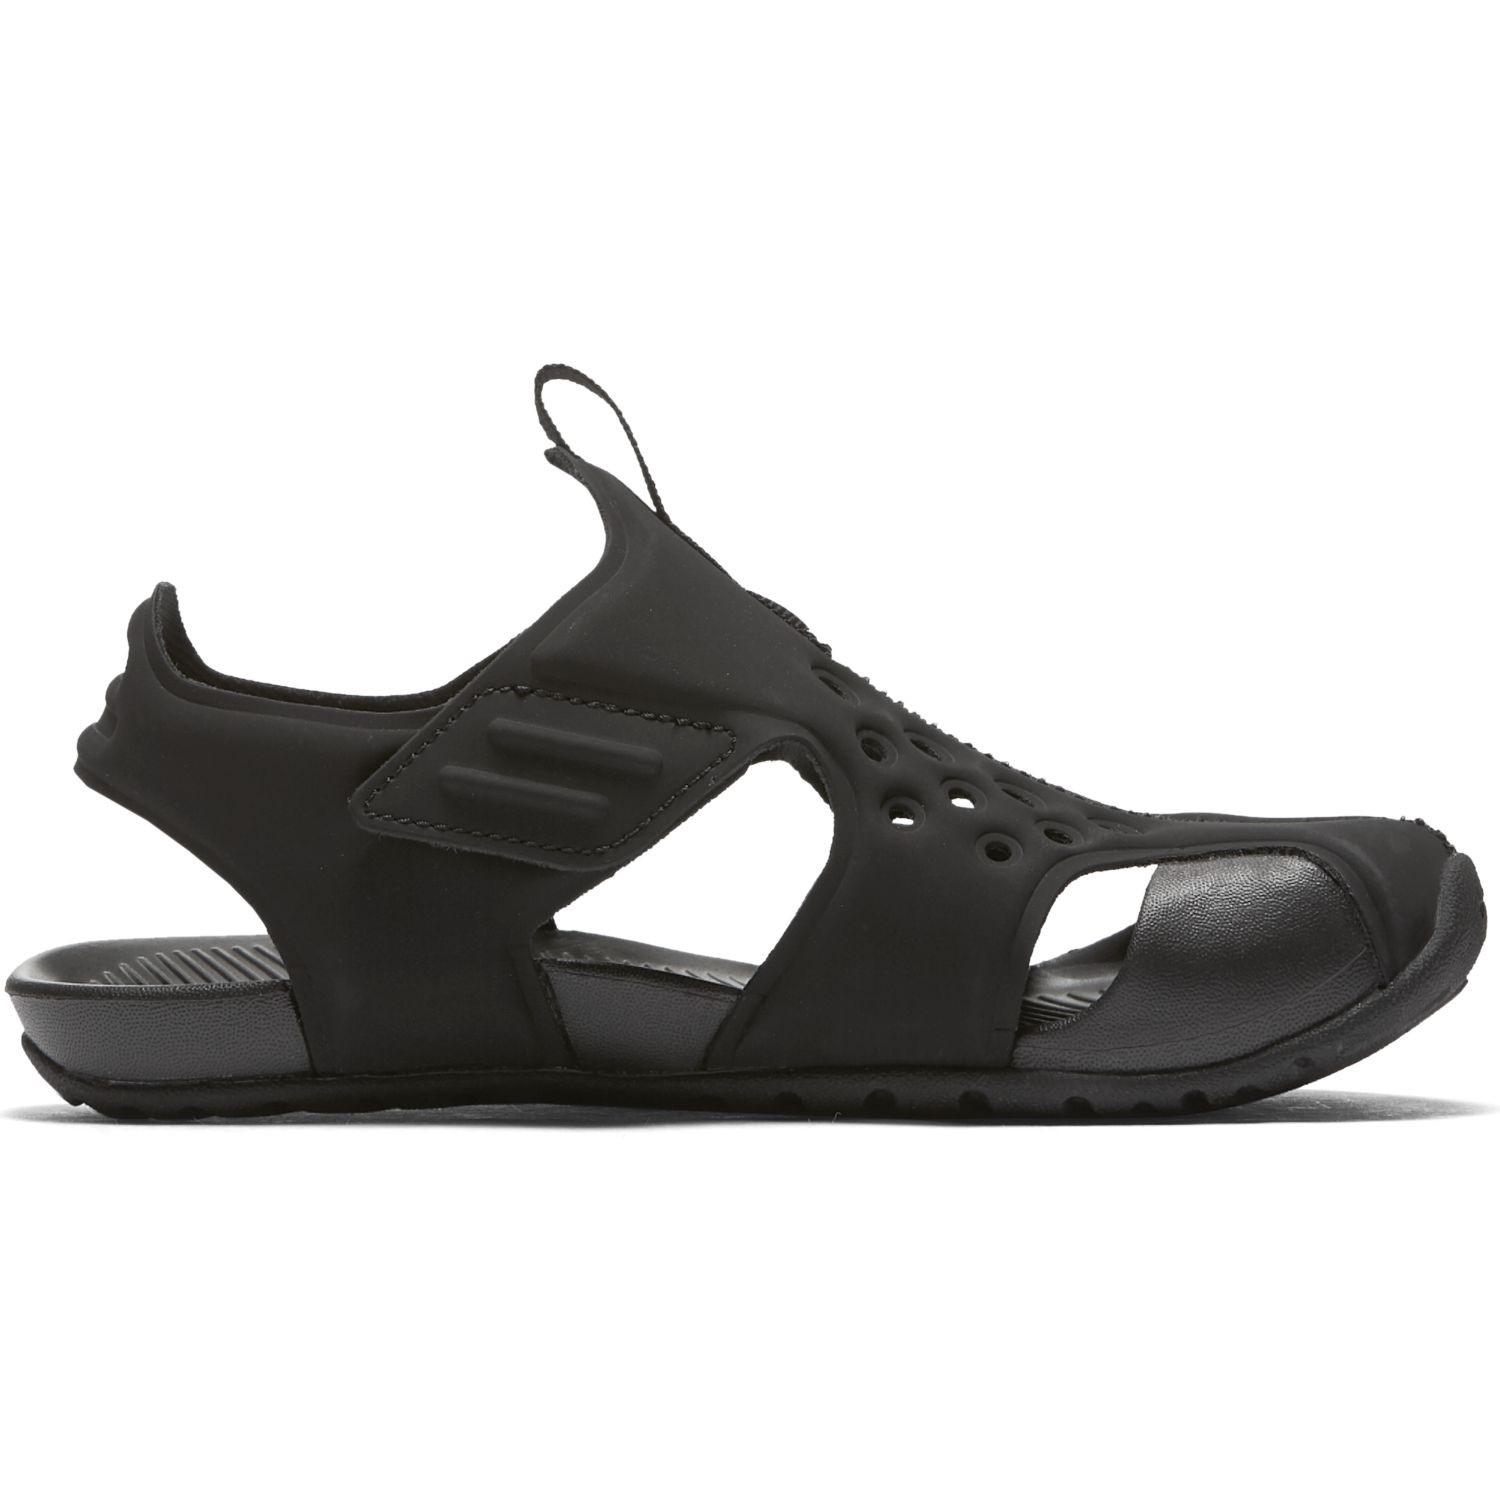 ad42a71e98b7 Nike Sunray Protect 2 PS - Kids Casual Sandals - Black White ...